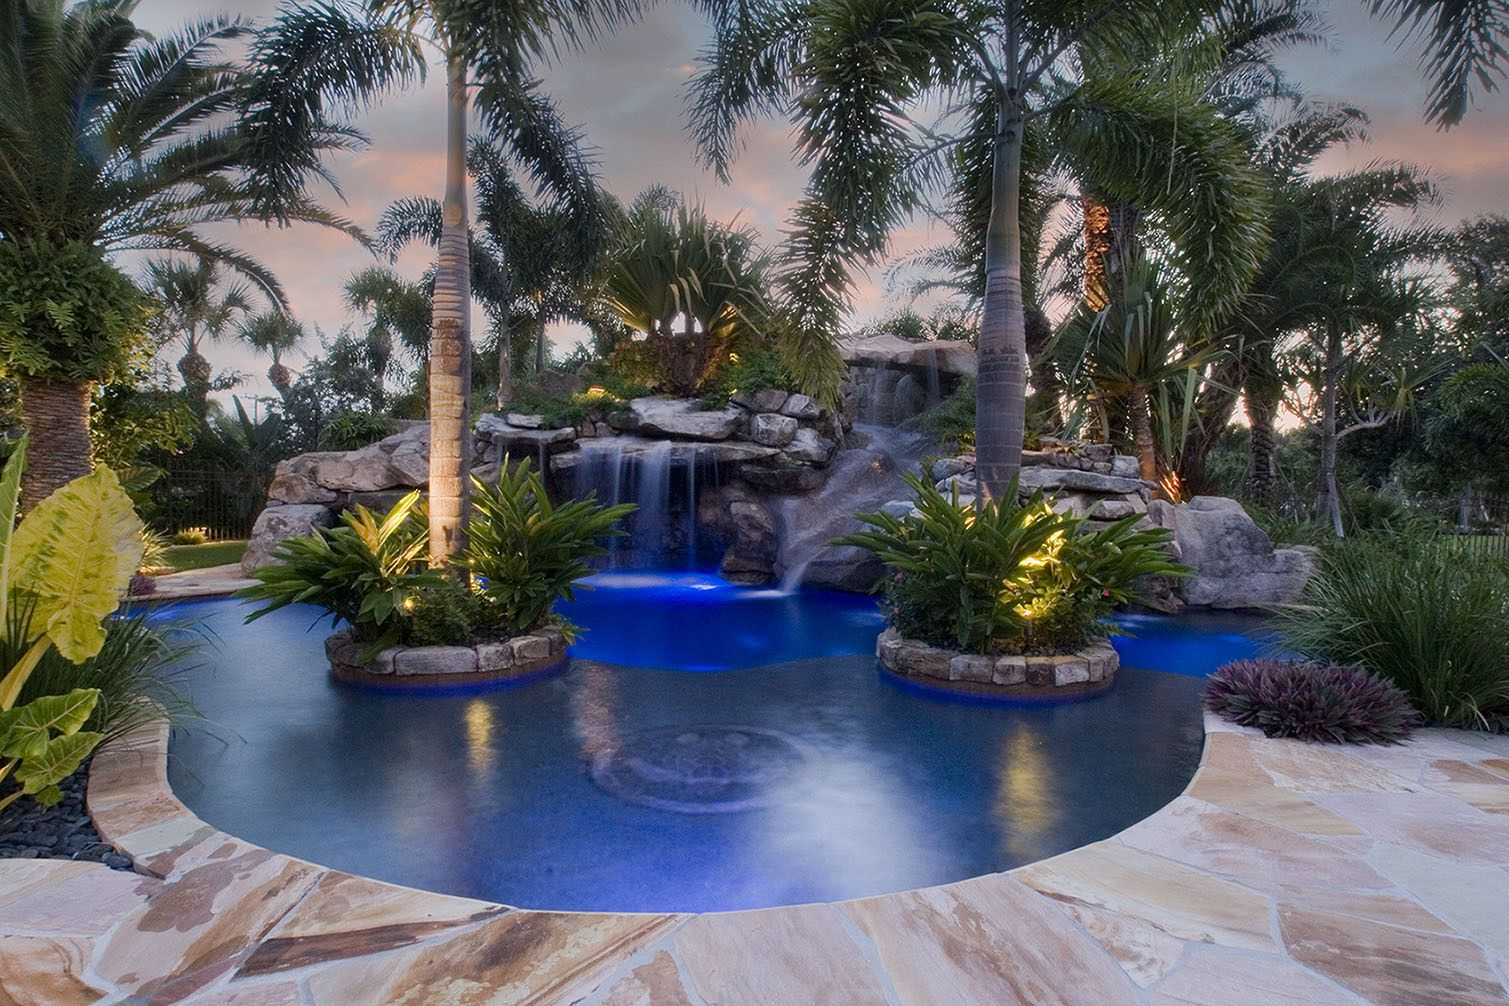 top 10 complete outdoor designs of swimming pools by lucas lagoons - Swimming Pool Designs